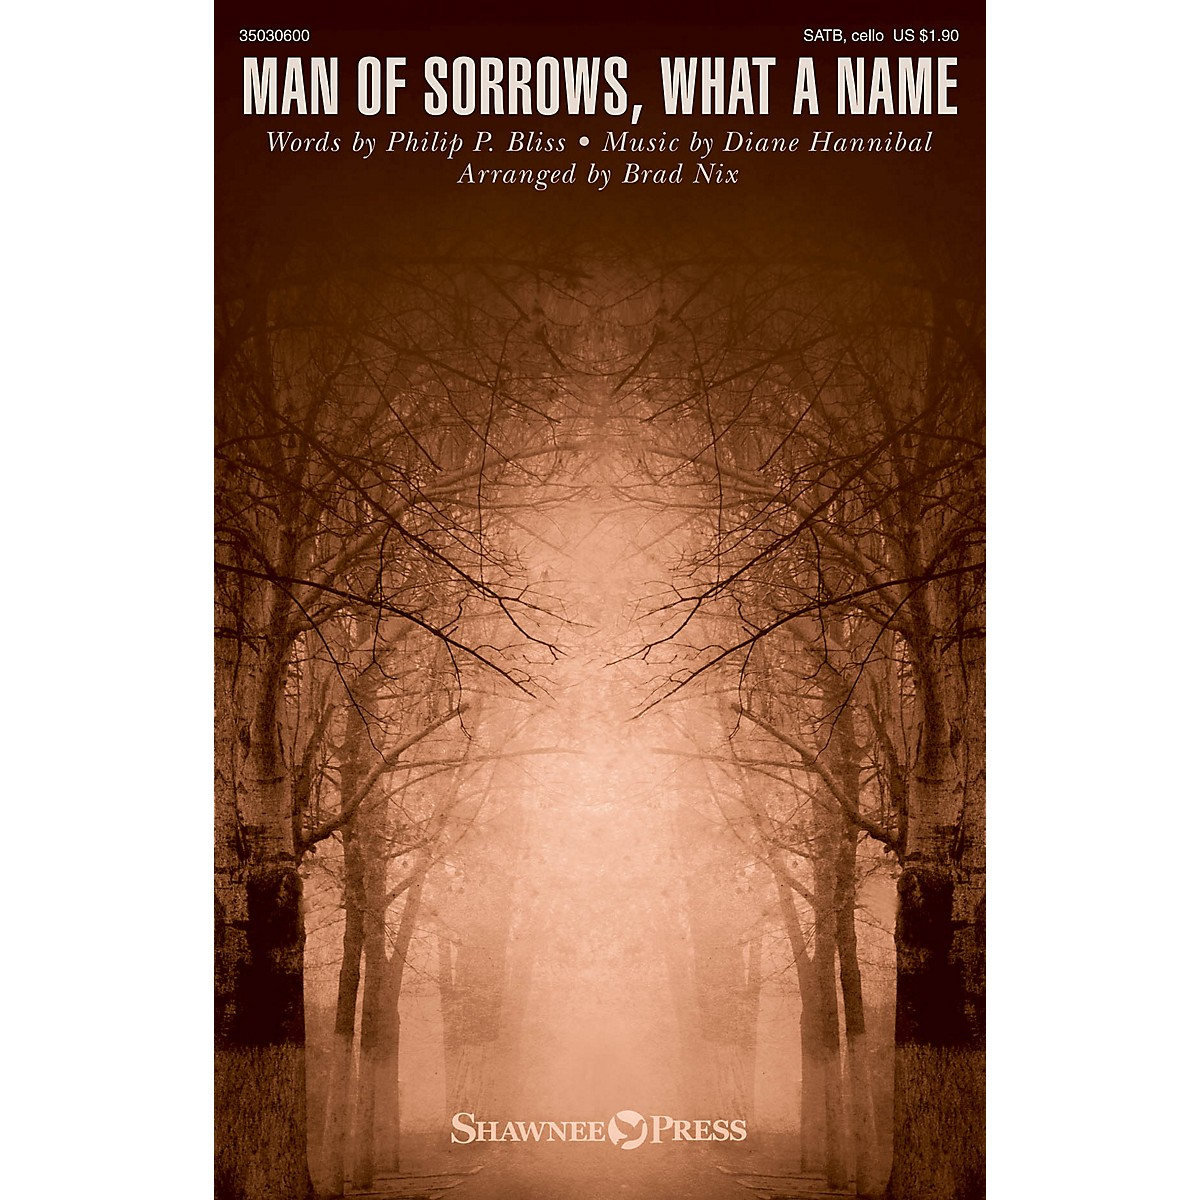 Shawnee Press Man of Sorrows, What a Name SATB W/ CELLO arranged by Brad Nix